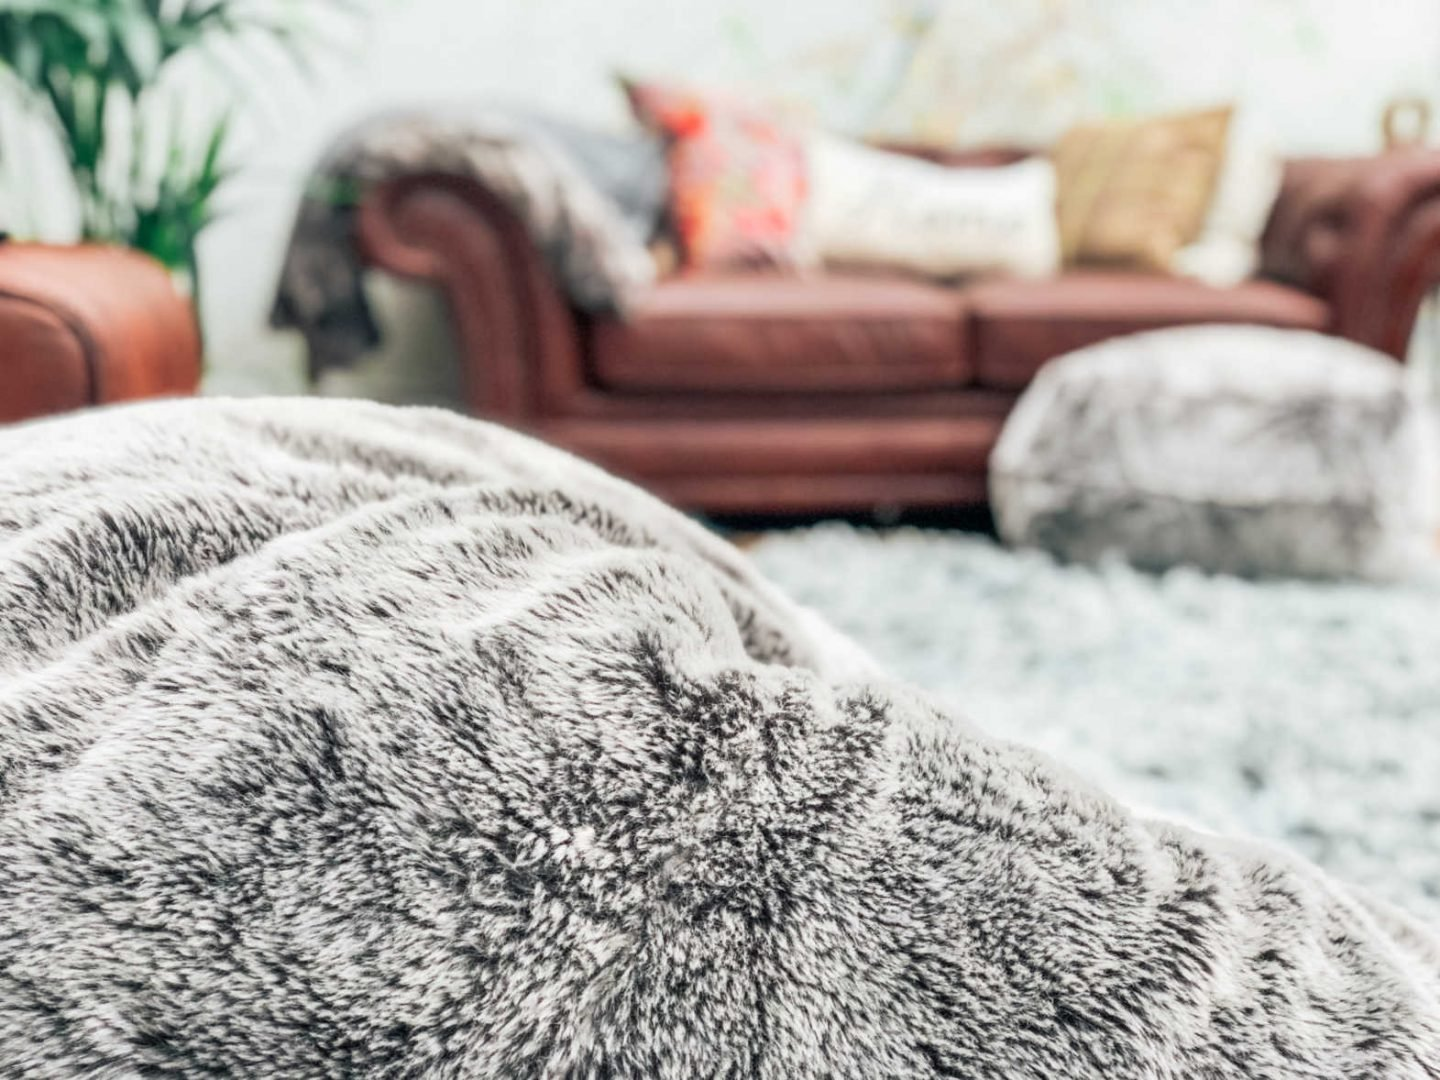 Extra seating ideas with beanbags